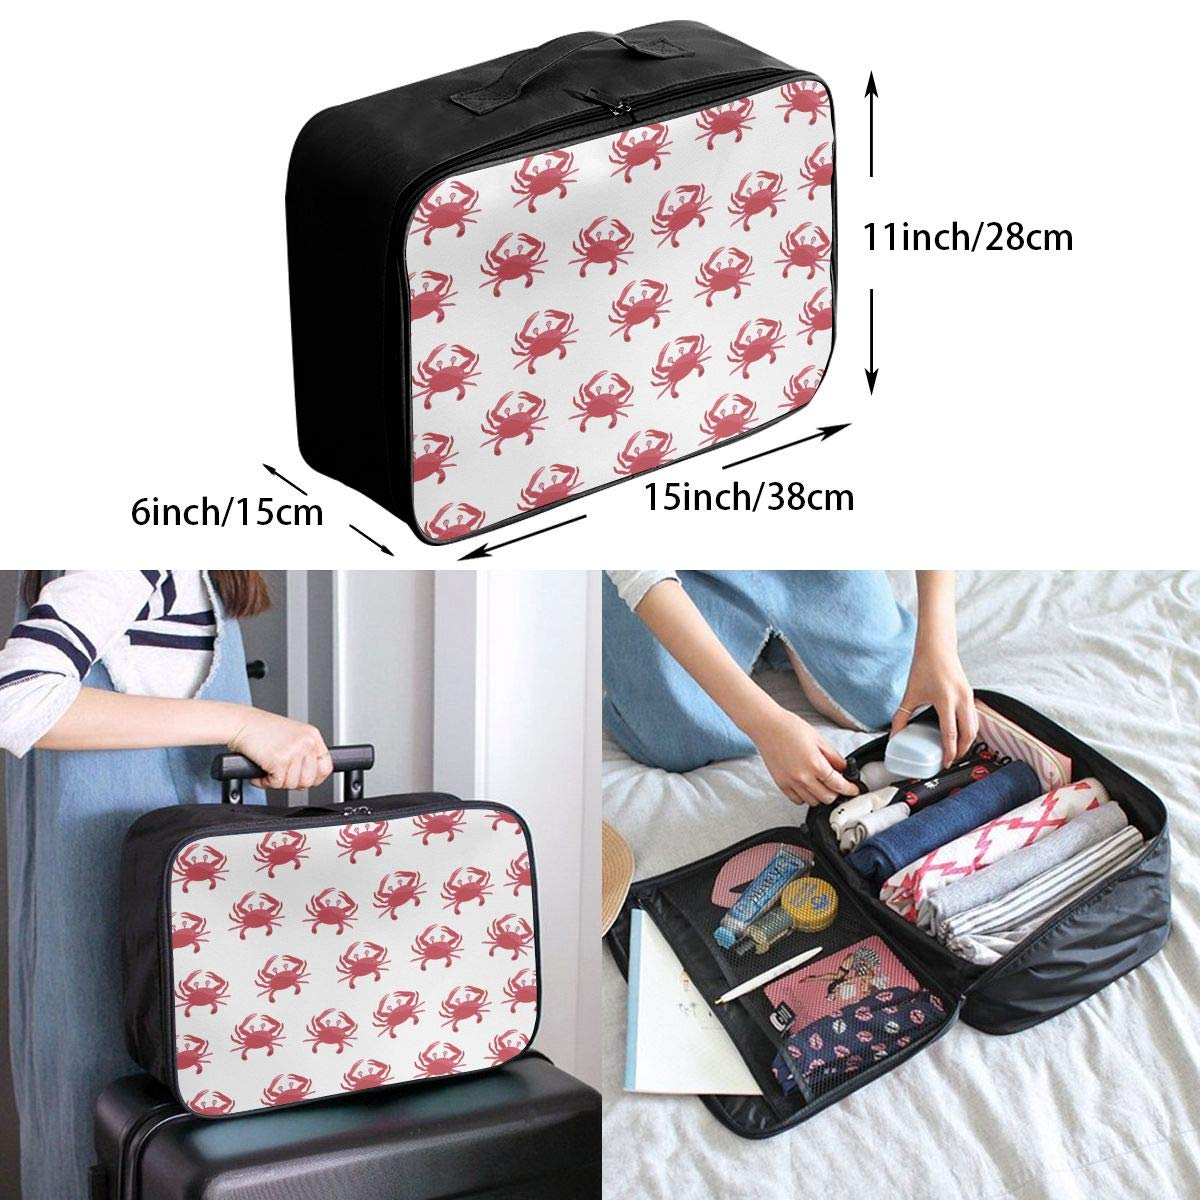 Cute Cartoon Crabs Travel Duffel Bag Casual Large Capacity Portable Luggage Bag Suitcase Storage Bag Luggage Packing Tote Bag Weekend Trip